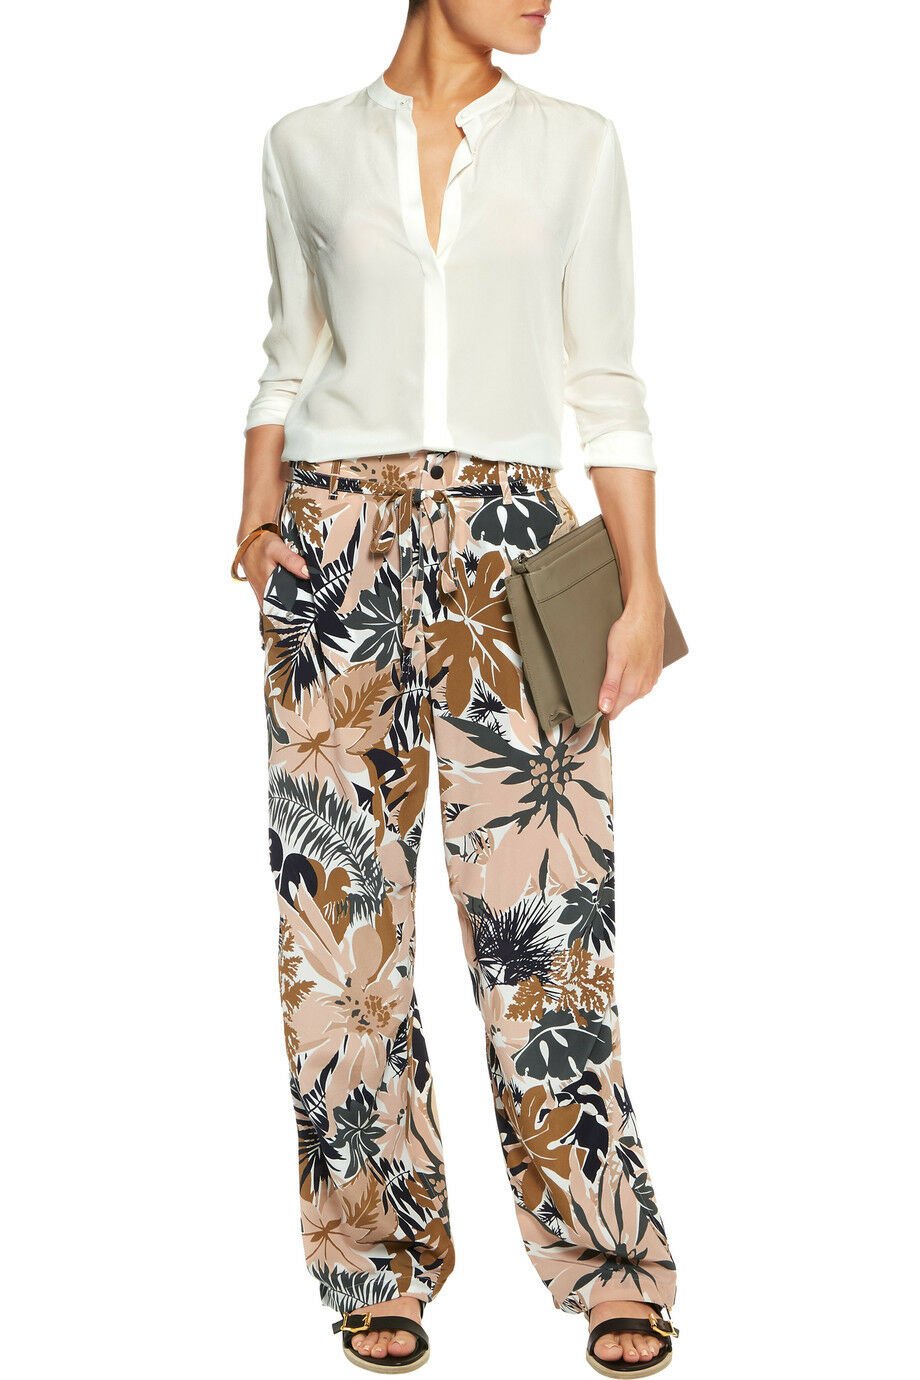 Rag and Bone Victoria Printed Silk Belted Pants Spruce Combo sz.6 NWT